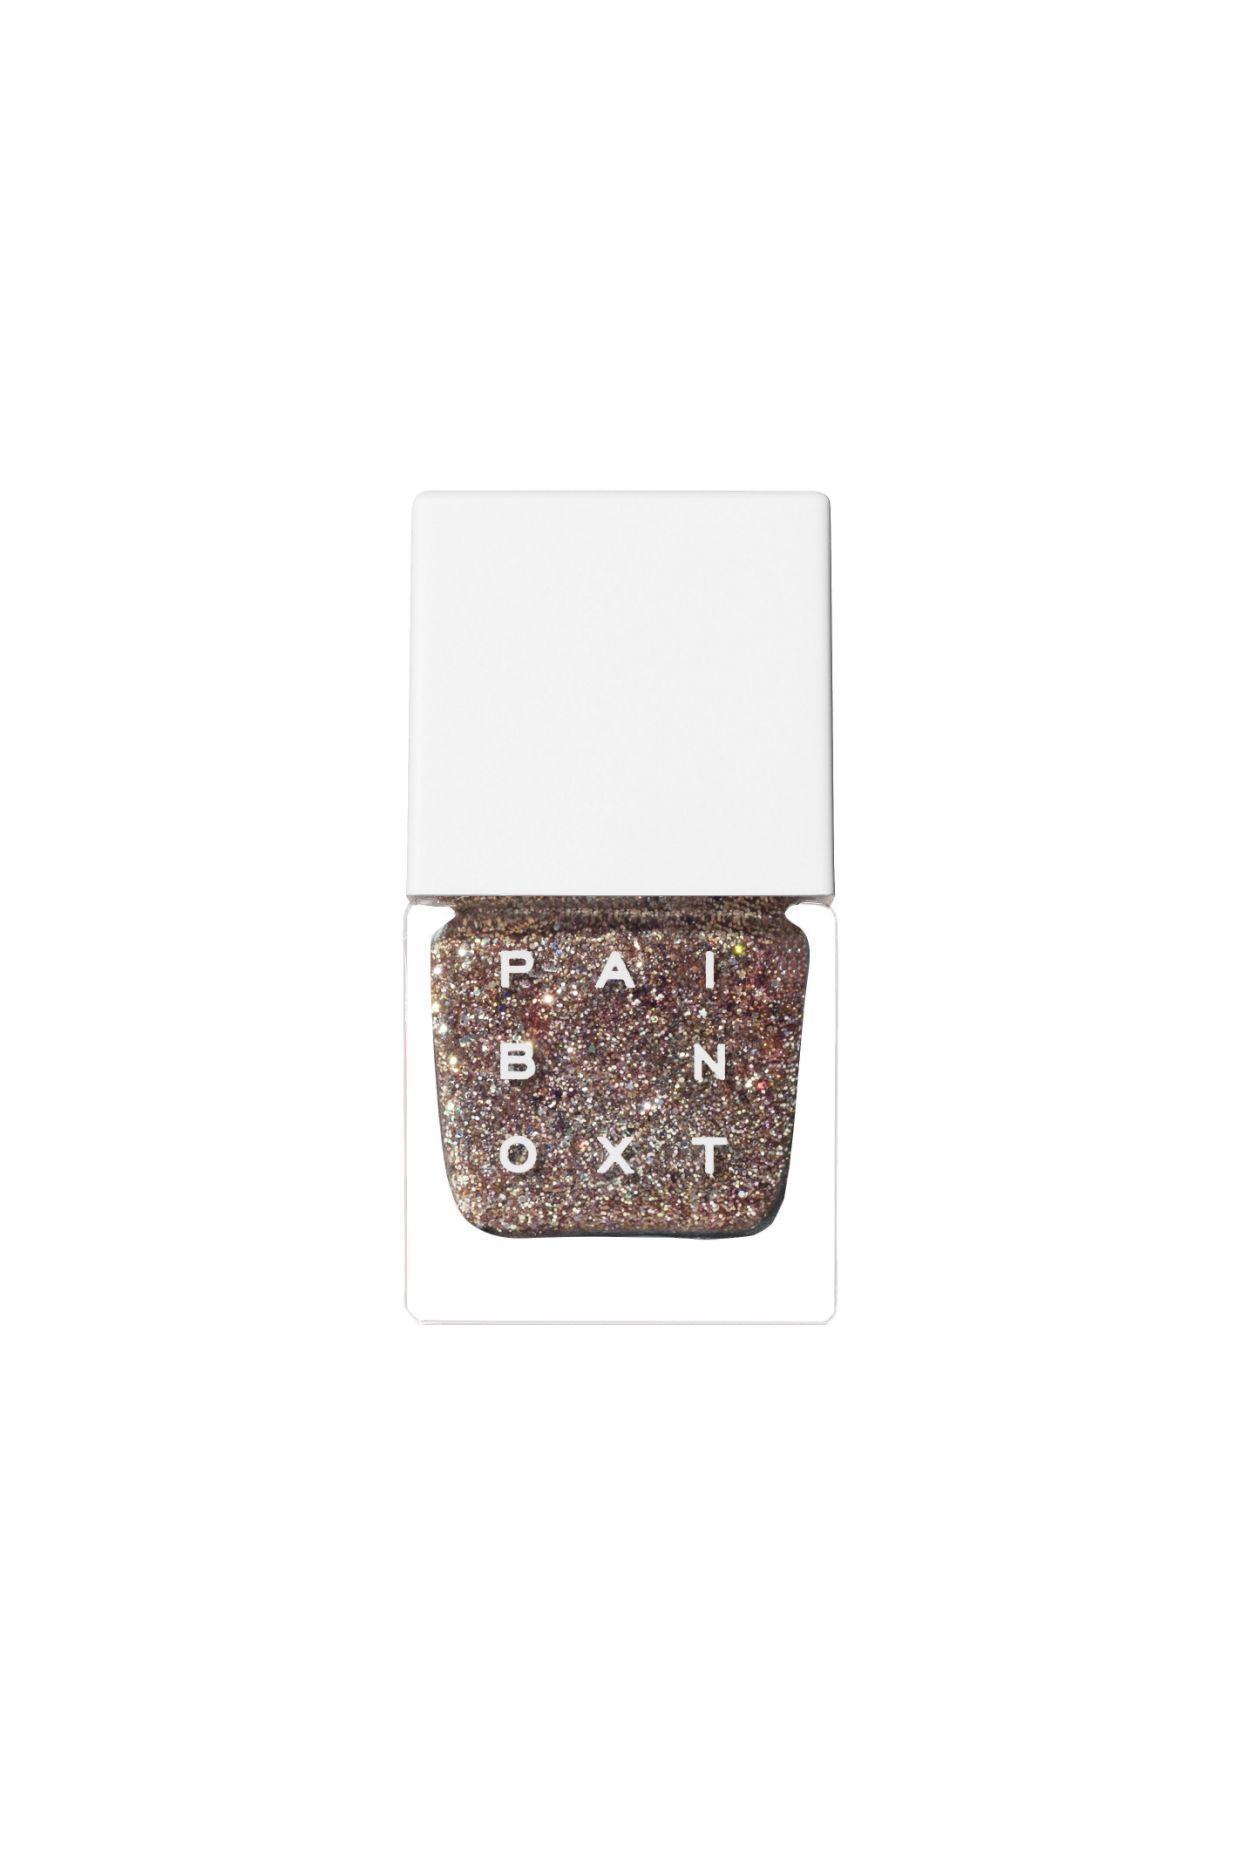 "<h3><strong>Paintbox Nail Polish in Like Magic</strong></h3> <p>Everyone needs a sparkly polish in their collection, and this one is perfect because it has a champagne pearl base and fine-grain gold flecks that give your nails a sophisticated kind of shine.</p> <br> <br> <strong>Paintbox</strong> Nail Lacquer in Like Magic, $22, available at <a href=""https://paint-box.com/products/nail-lacquer-like-magic"" rel=""nofollow noopener"" target=""_blank"" data-ylk=""slk:Paintbox"" class=""link rapid-noclick-resp"">Paintbox</a>"